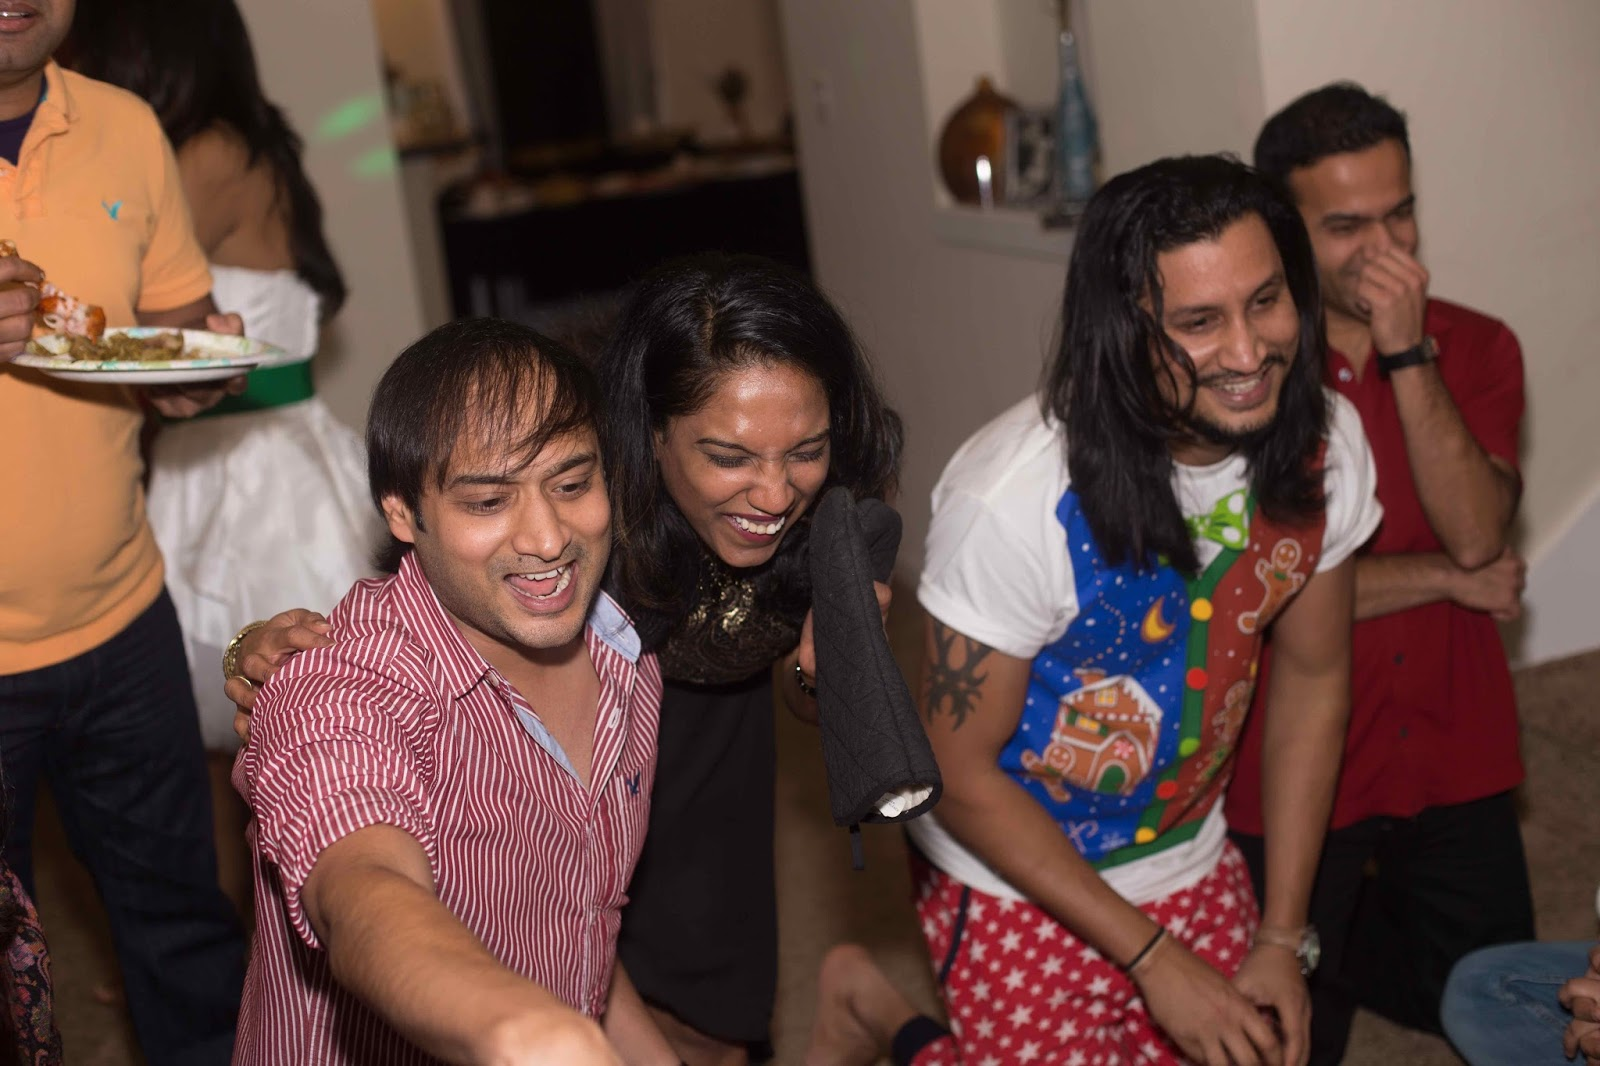 christmas party 2015, house parties, seattle parties, ananya in a party, girls wearing white and red dresses